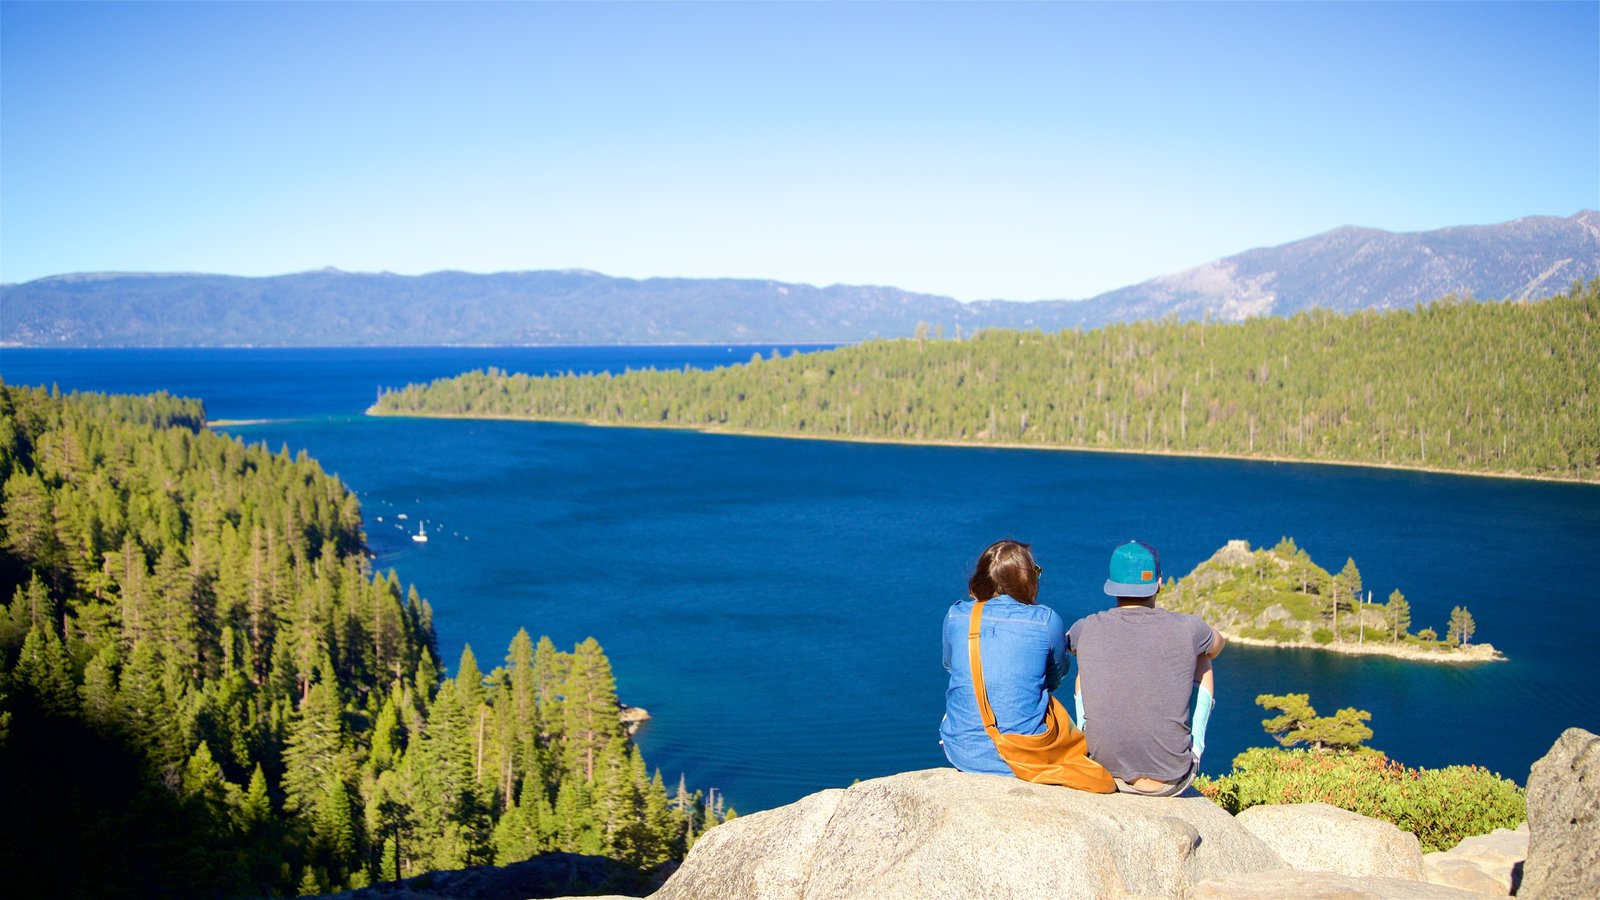 south lake tahoe latin dating site Weather underground provides local & long range weather forecasts, weather reports, maps & tropical weather conditions for locations worldwide.